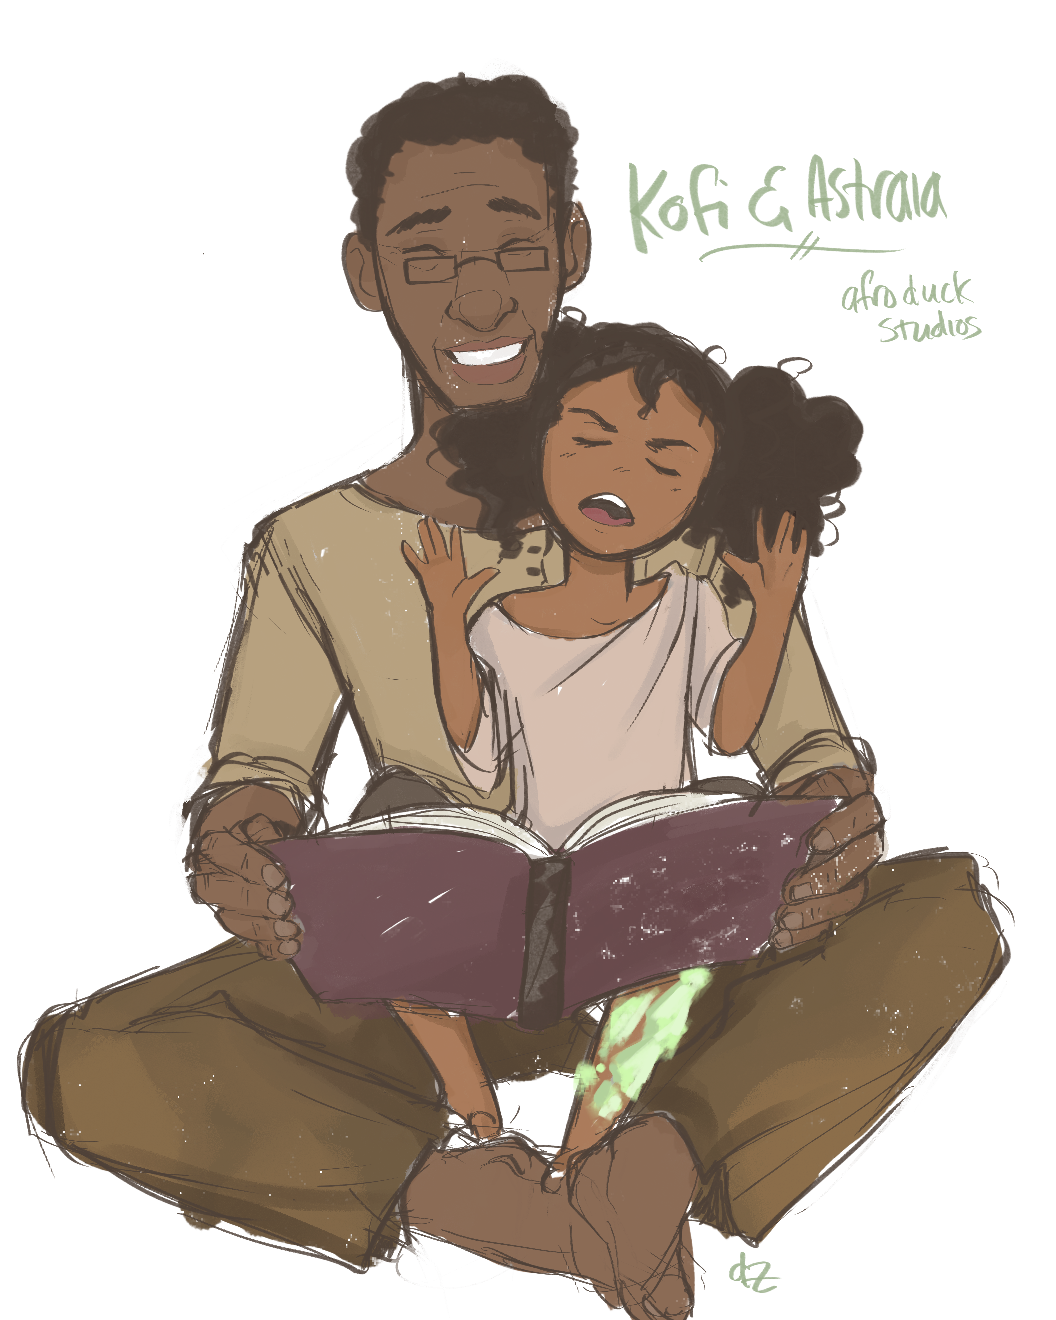 Concept Design of Kofi and Young Astraia (Designed by Yayira Diaz)